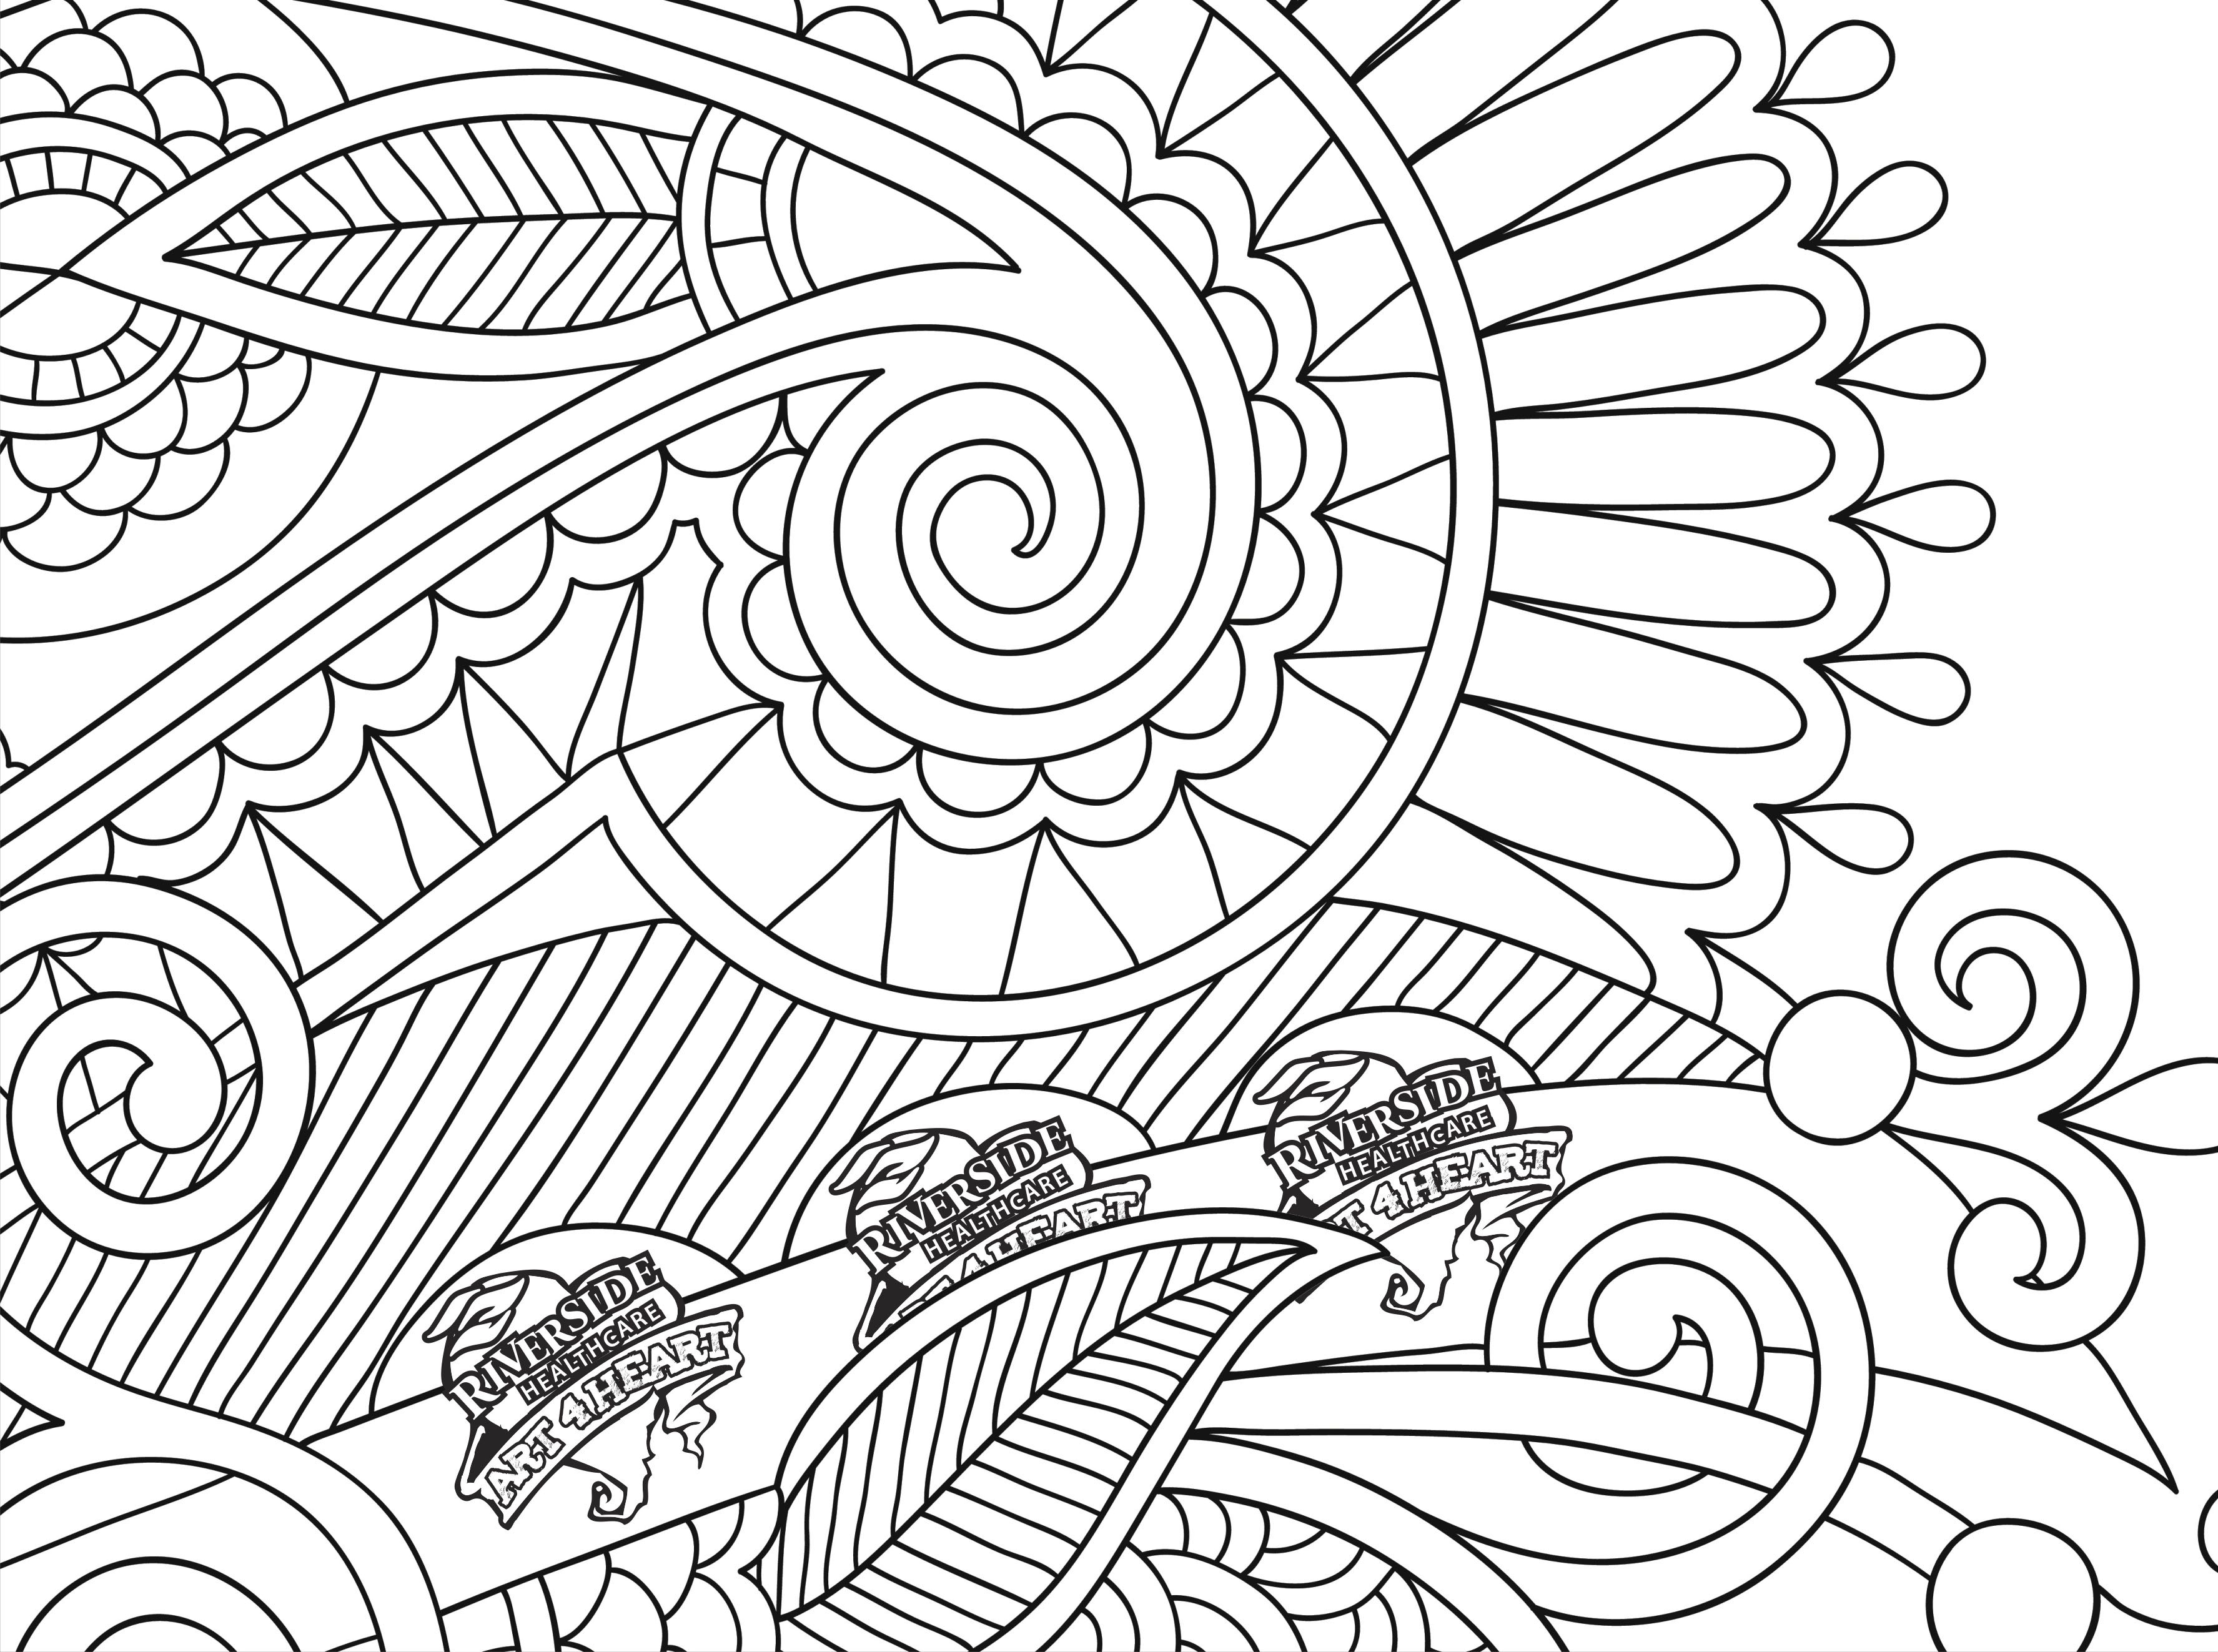 Coloring Pages For Adults Paisley At Getcolorings